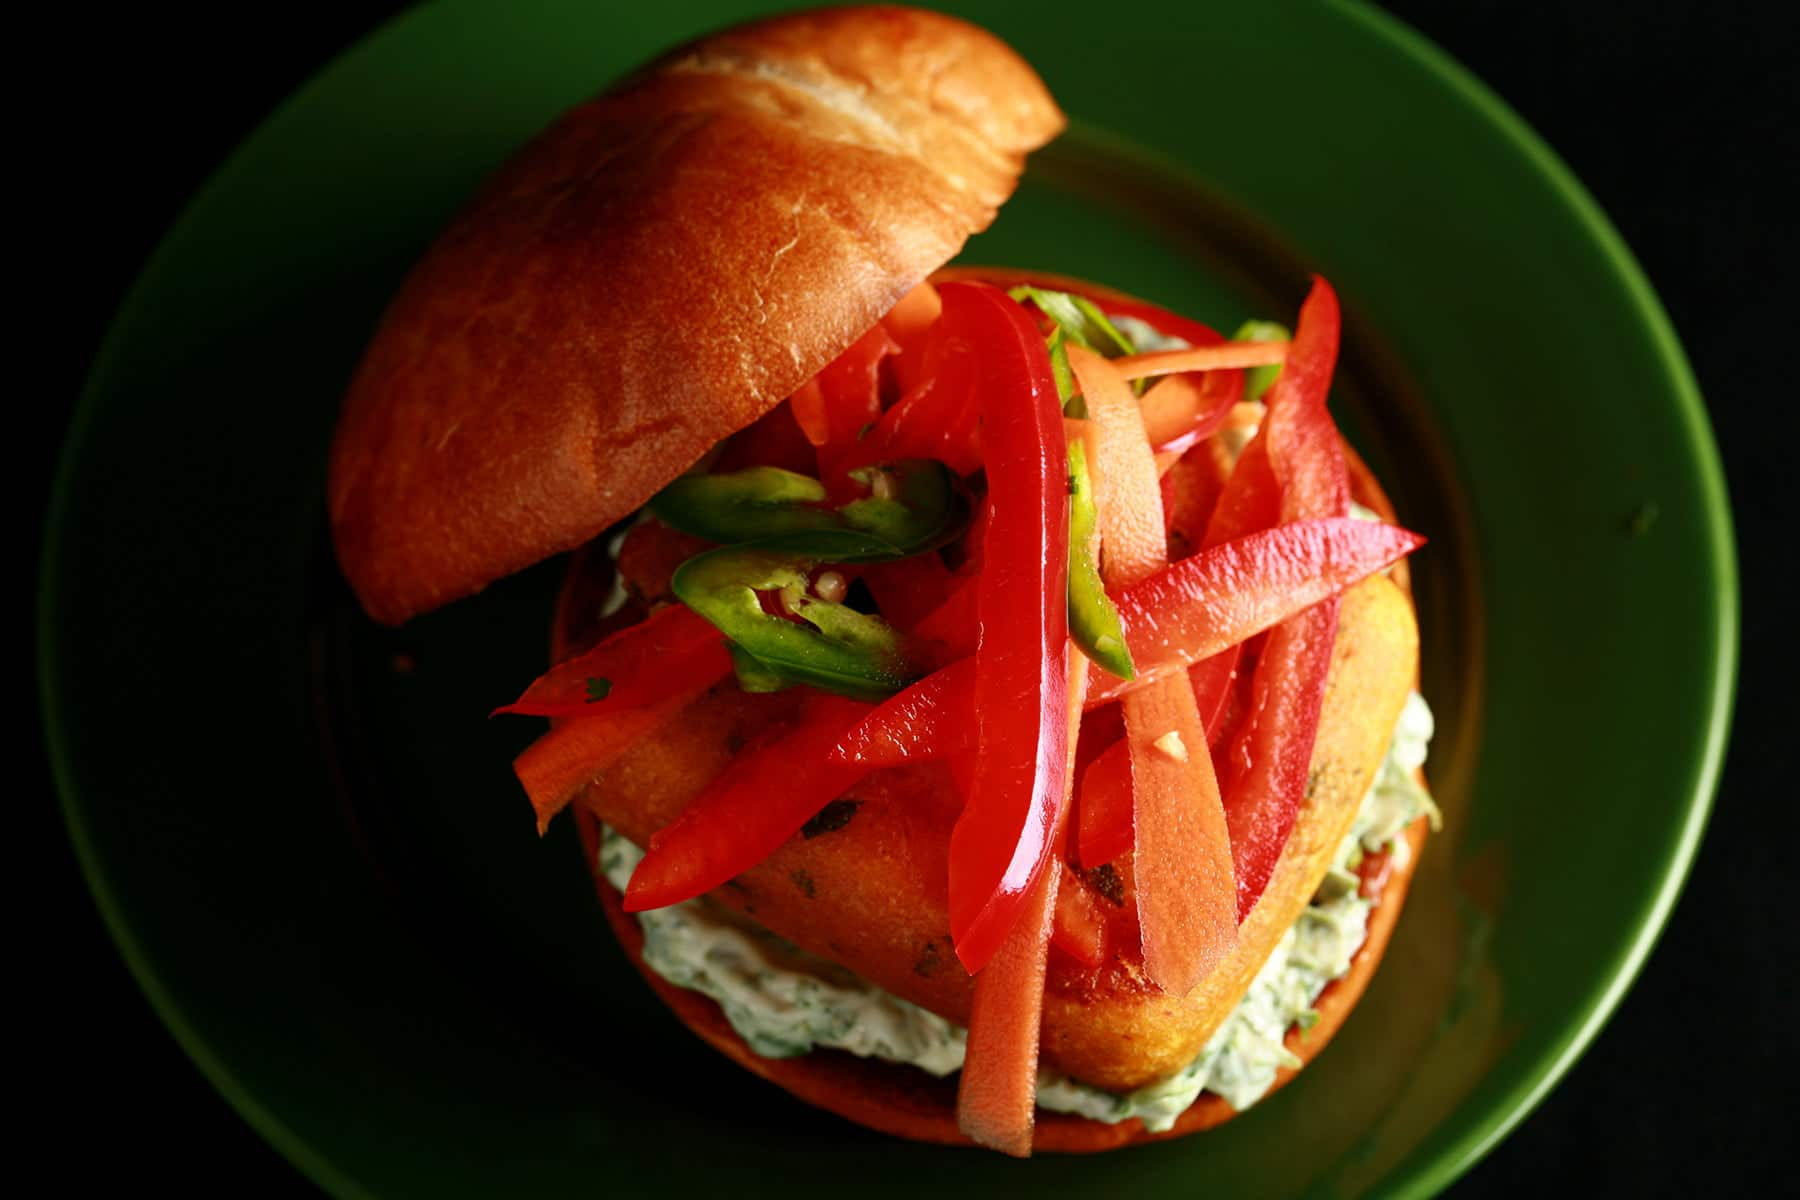 A very close up view of a paneer burger - a pakora battered patty of paneer, with cilantro-mint mayonnaise and a pickled slaw made of red peppers, carrots, and jalapenos, on a bun.